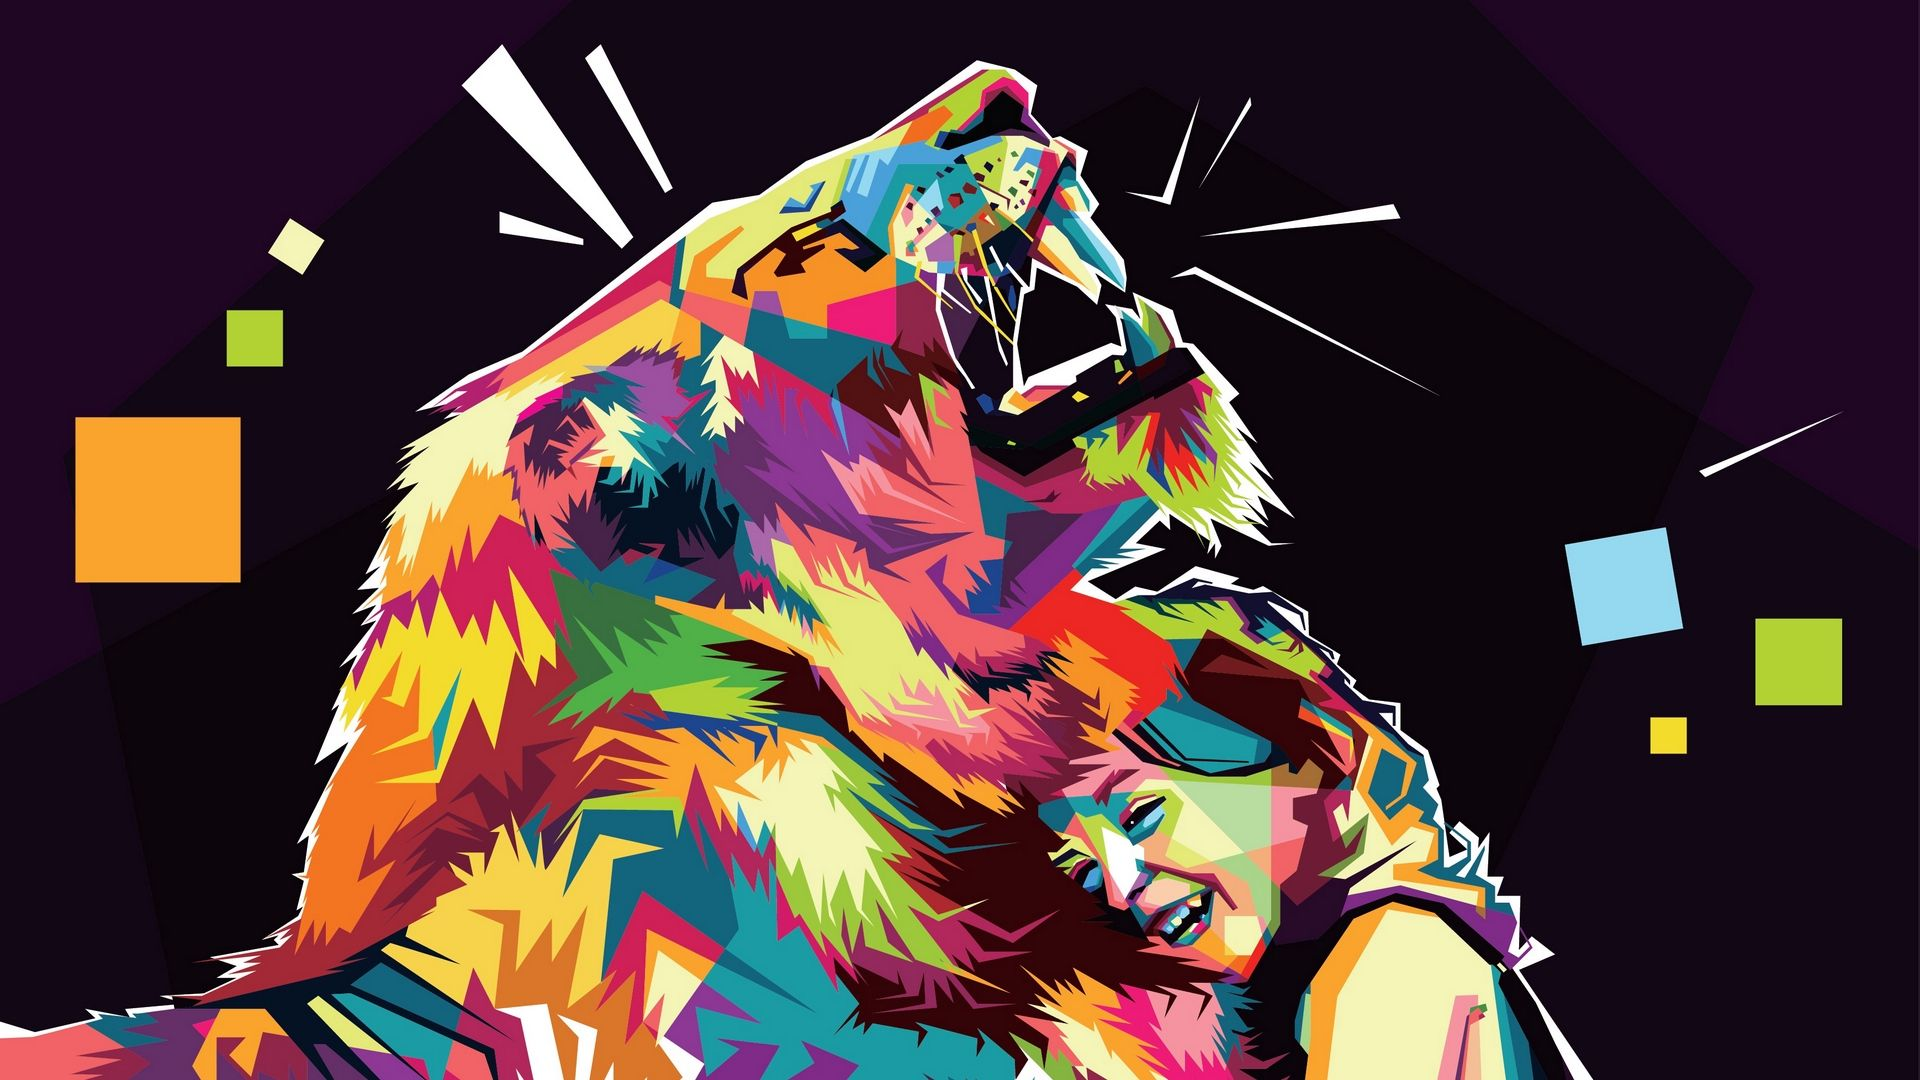 Lion Art free download wallpaper